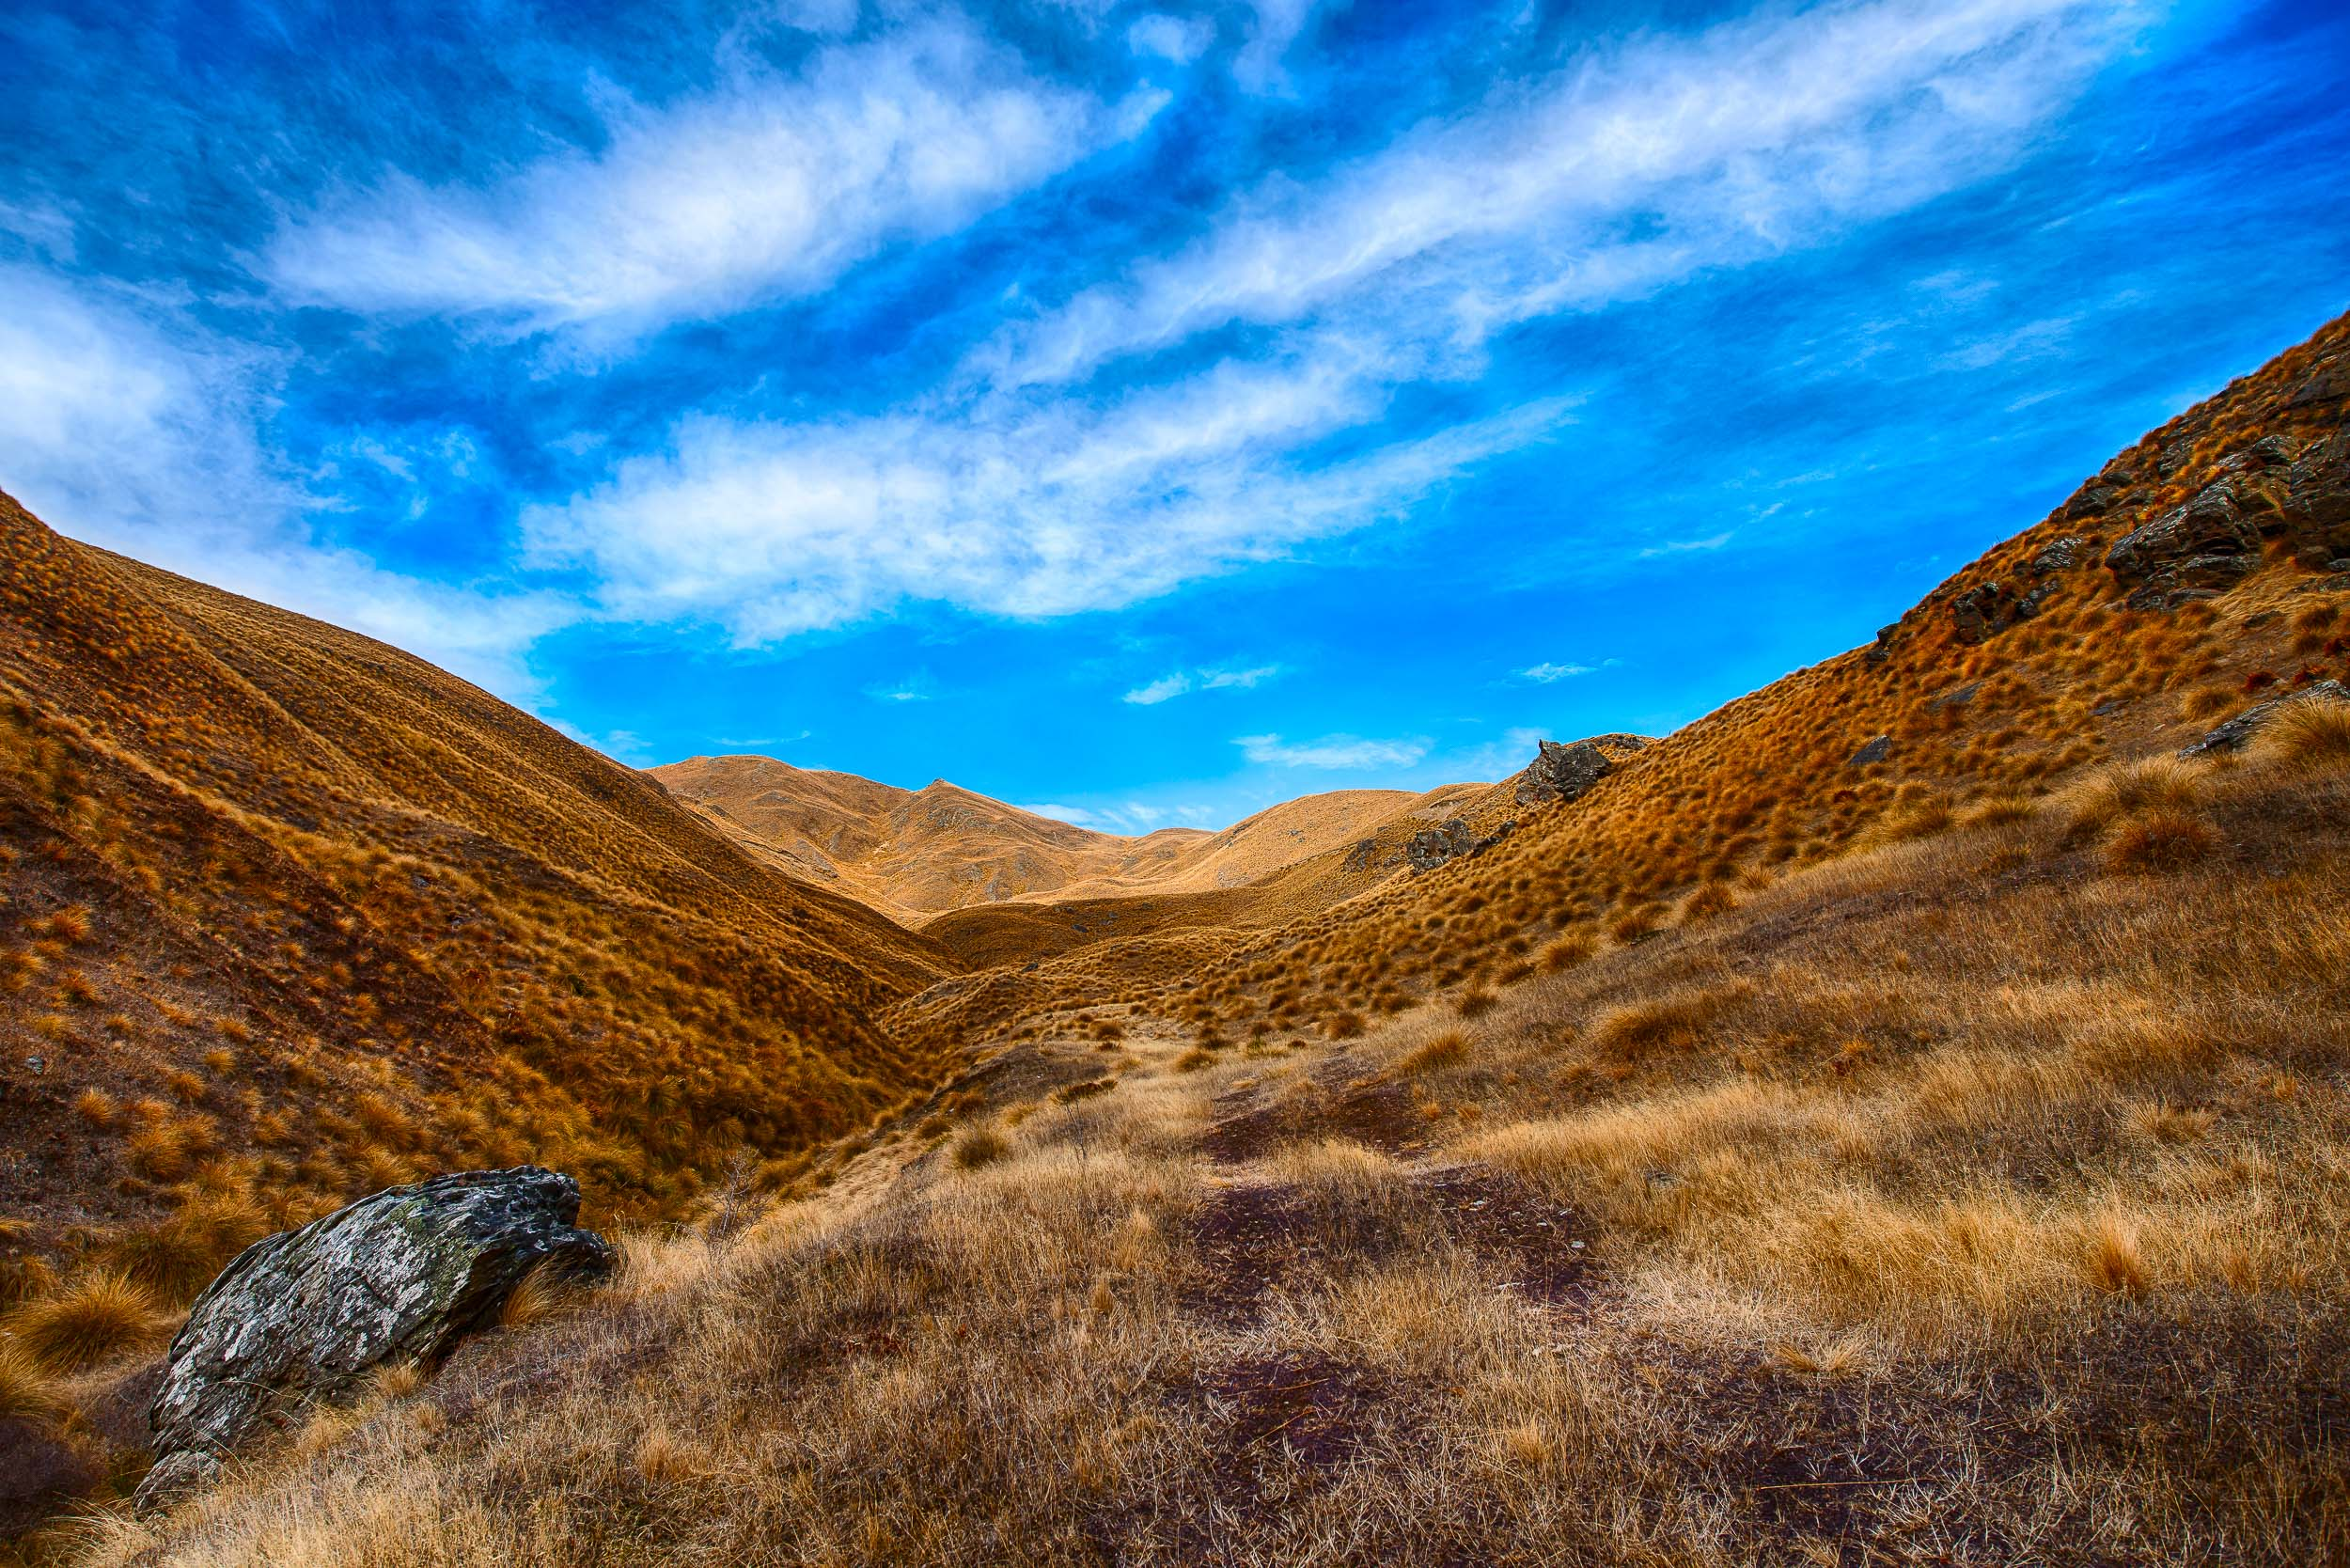 A    mountain track    over a high country tussock pass on the road between    Queenstown and Wanaka, New Zealand   .